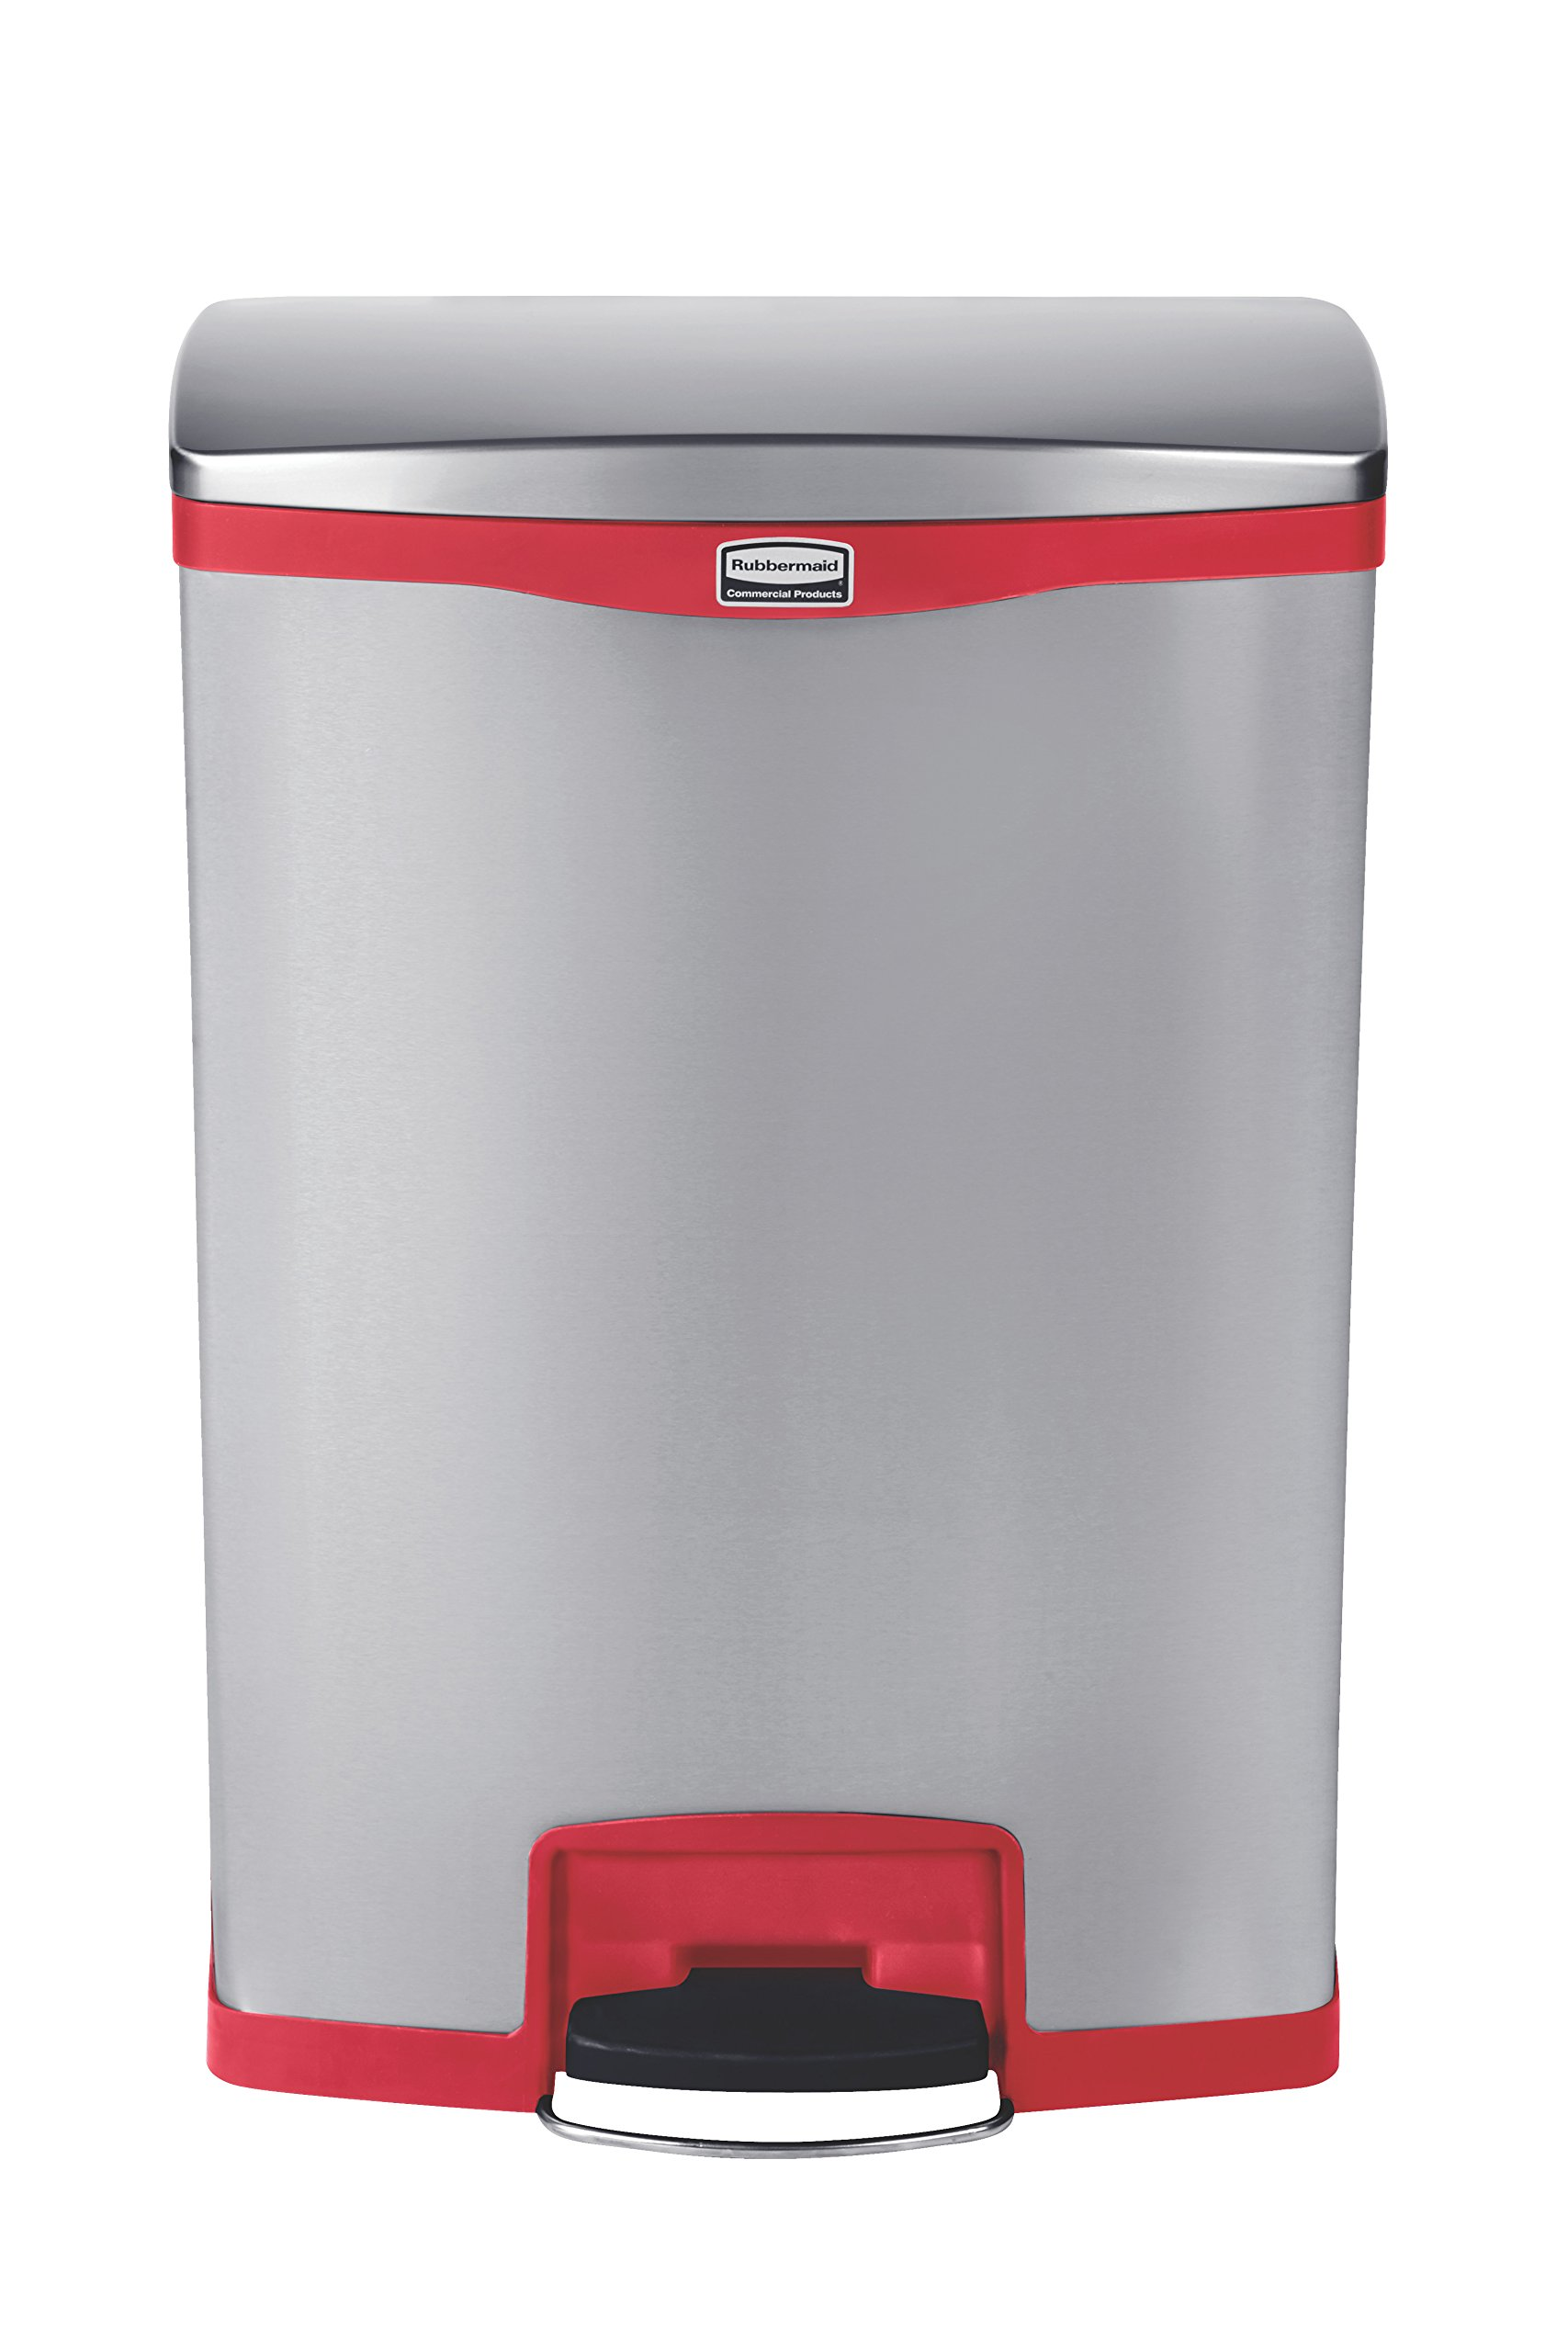 Rubbermaid Commercial Slim Jim Stainless Steel Front Step-On Wastebasket, 24-gallon, Red (1901988) by Rubbermaid Commercial Products (Image #2)